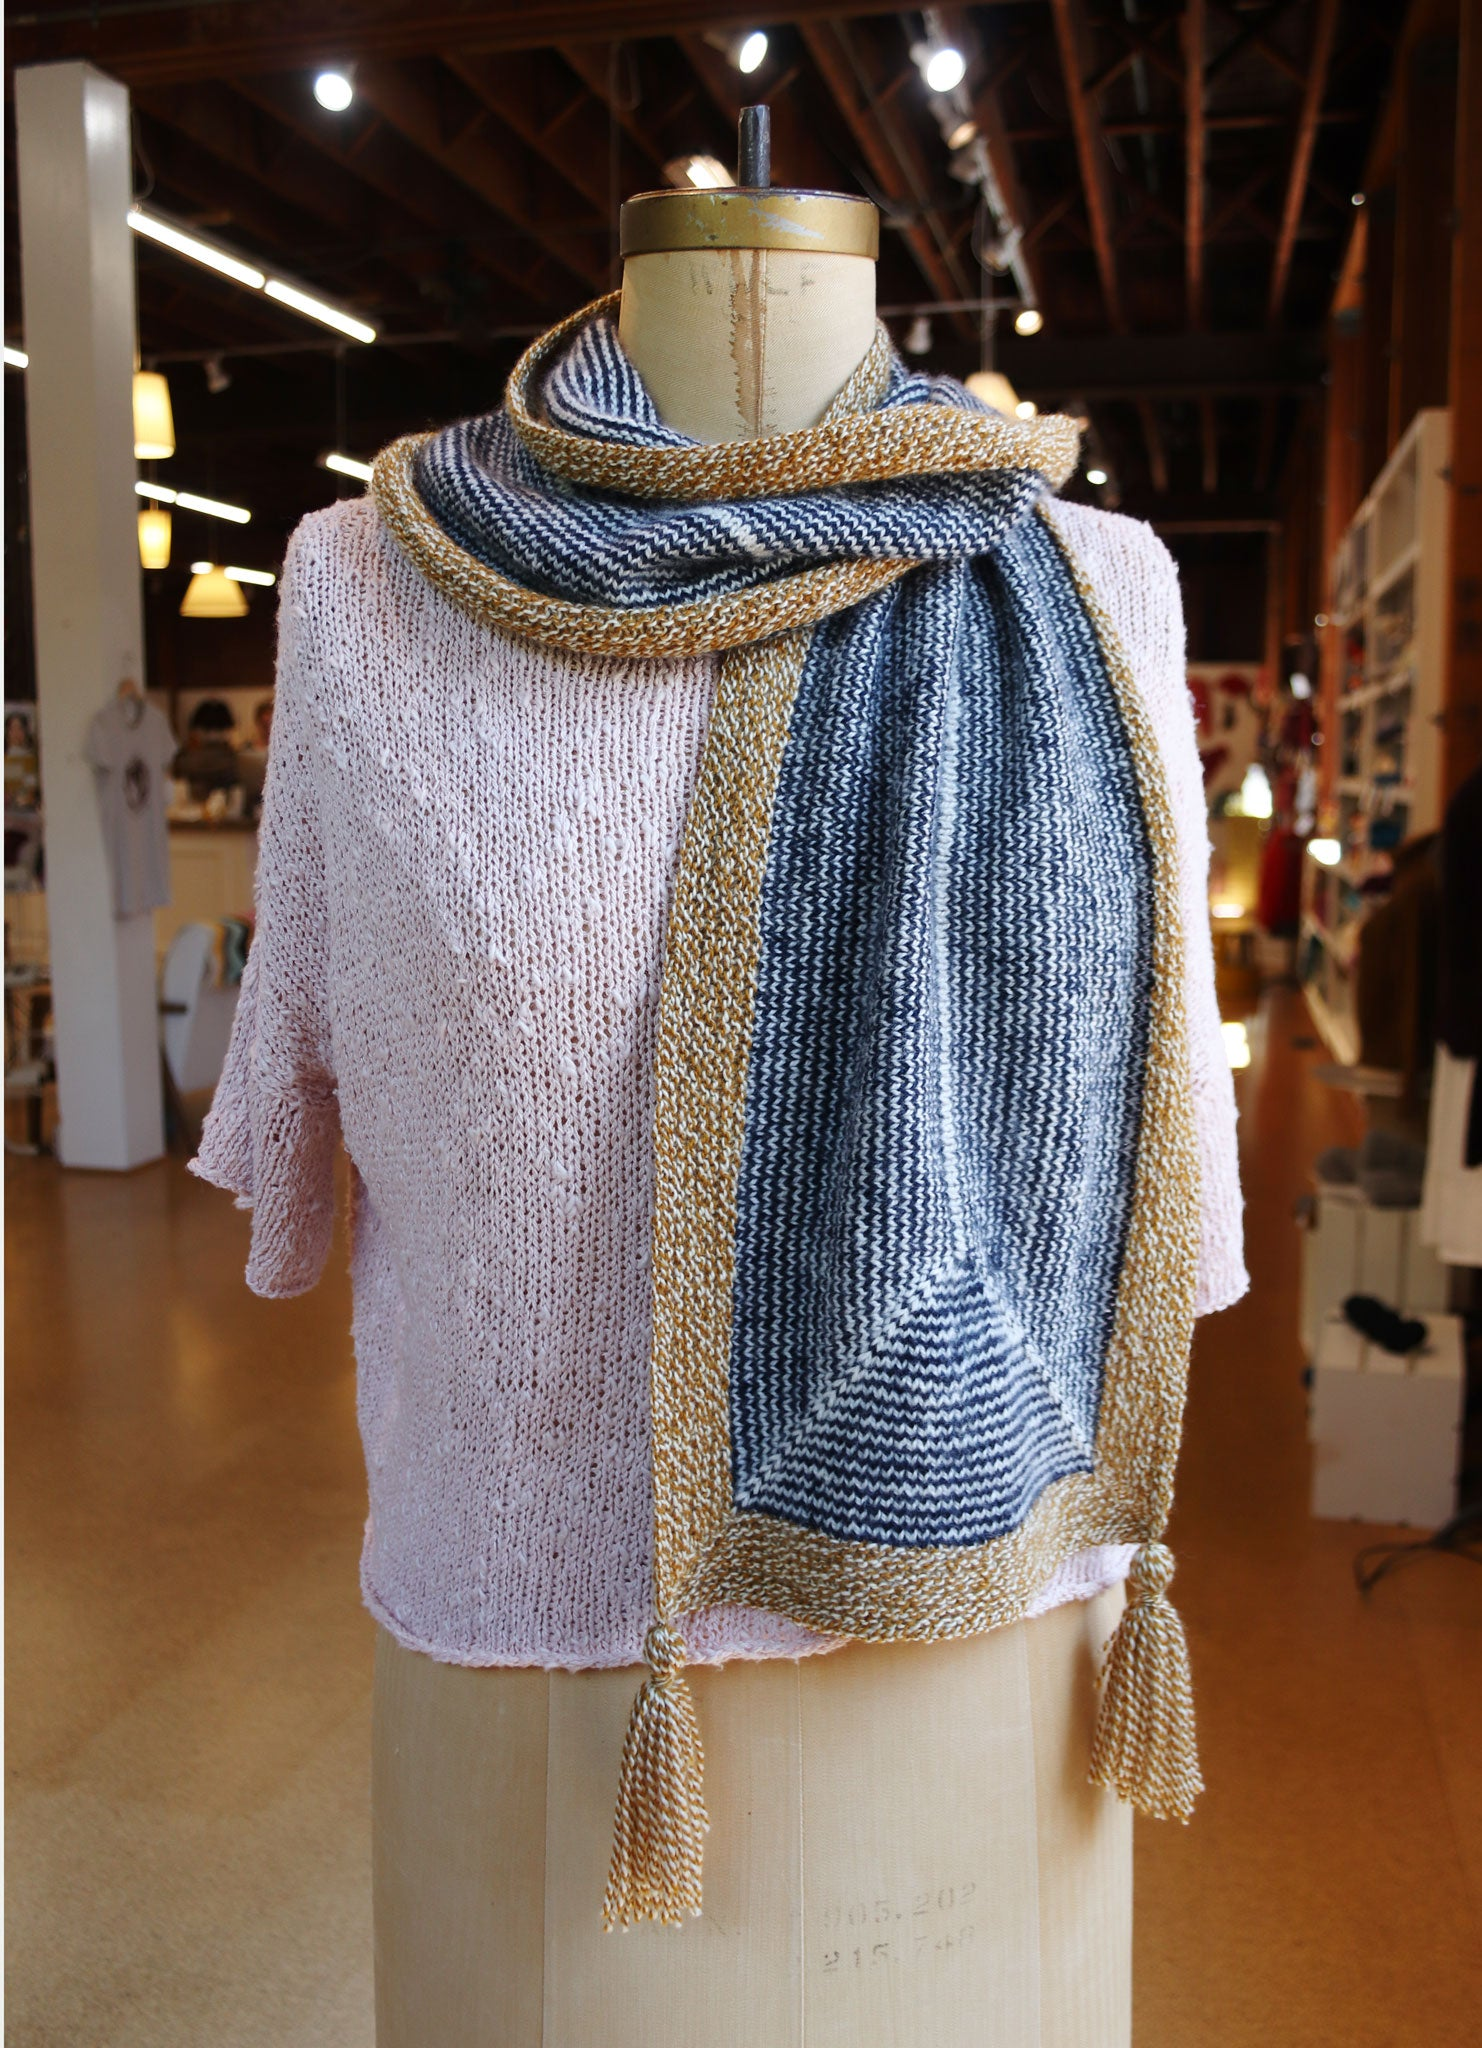 2019 Knitted Yarn Hop Pattern: Striped Longways Scarf No. 1